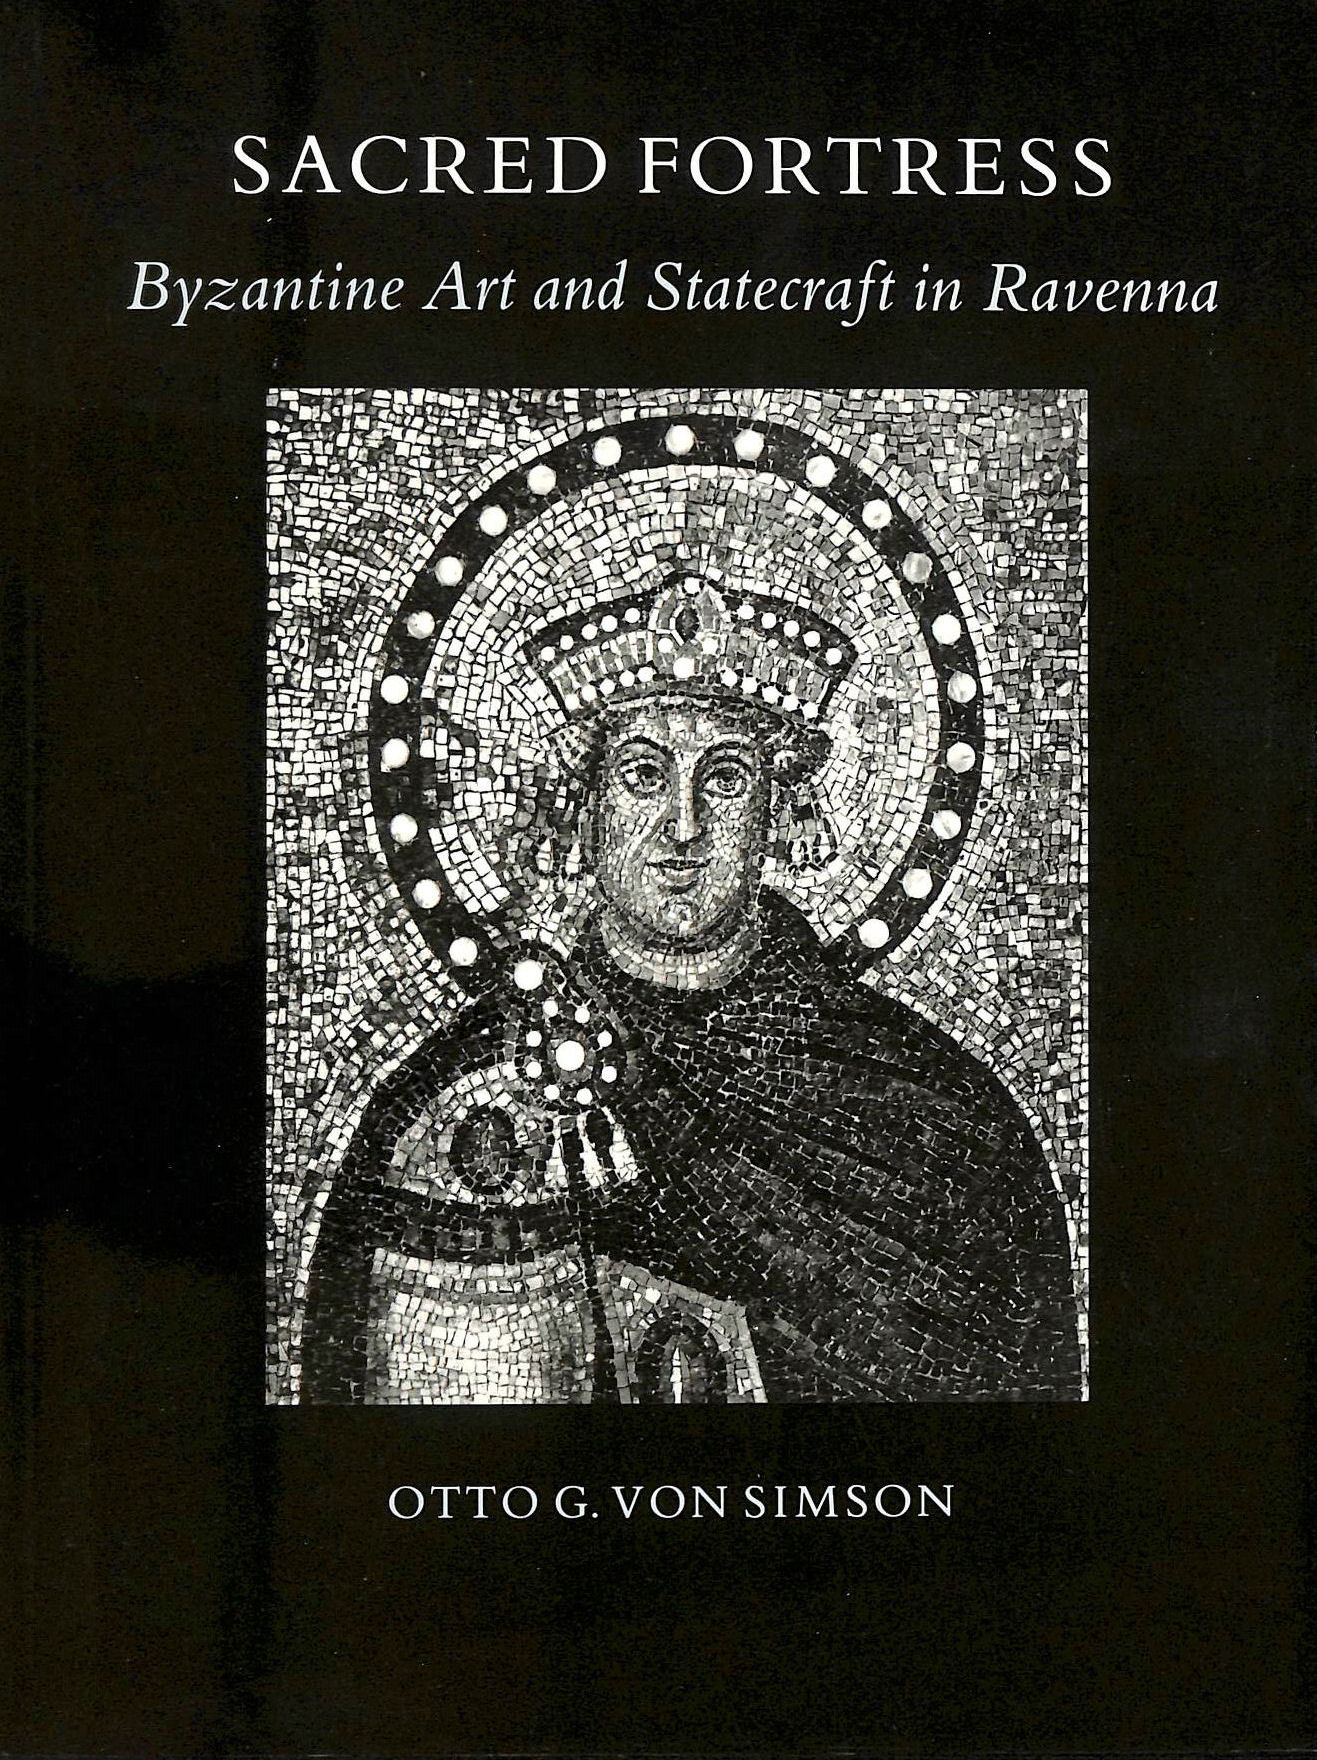 Image for Sacred Fortress: Byzantine Art and Statecraft in Ravenna. With a new preface